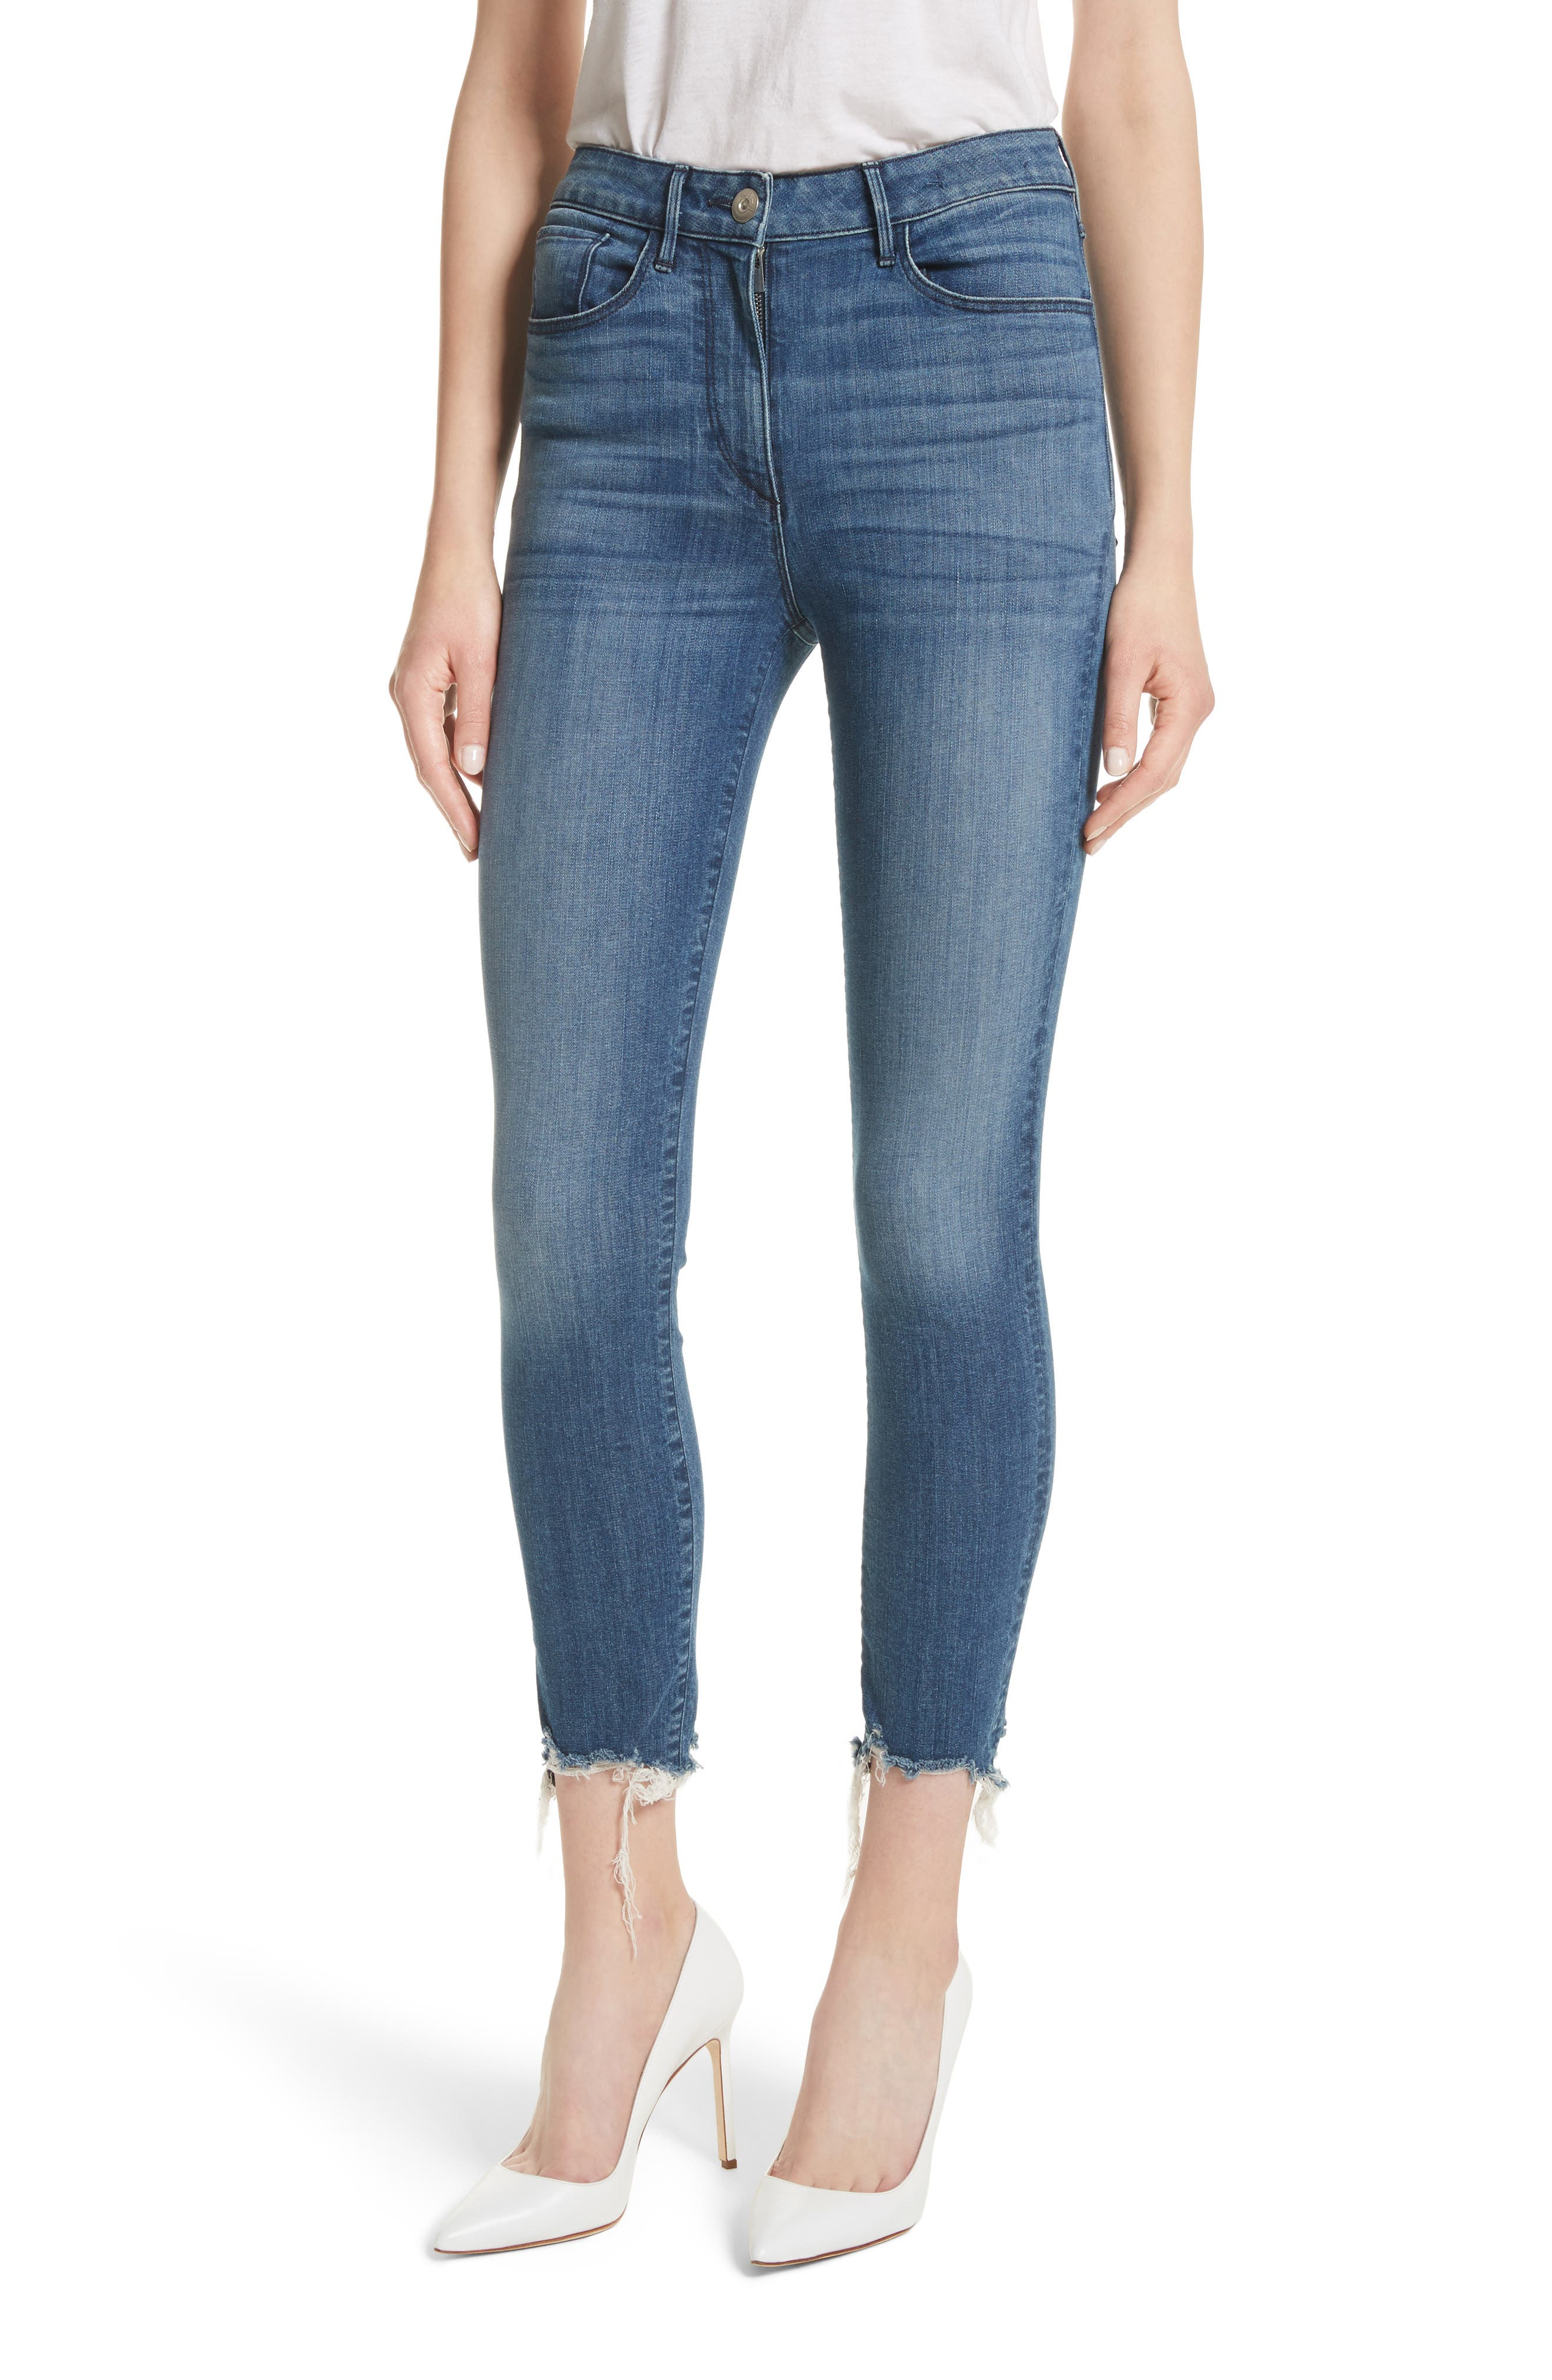 W3 Crop Skinny Jeans,                         Main,                         color, Remo